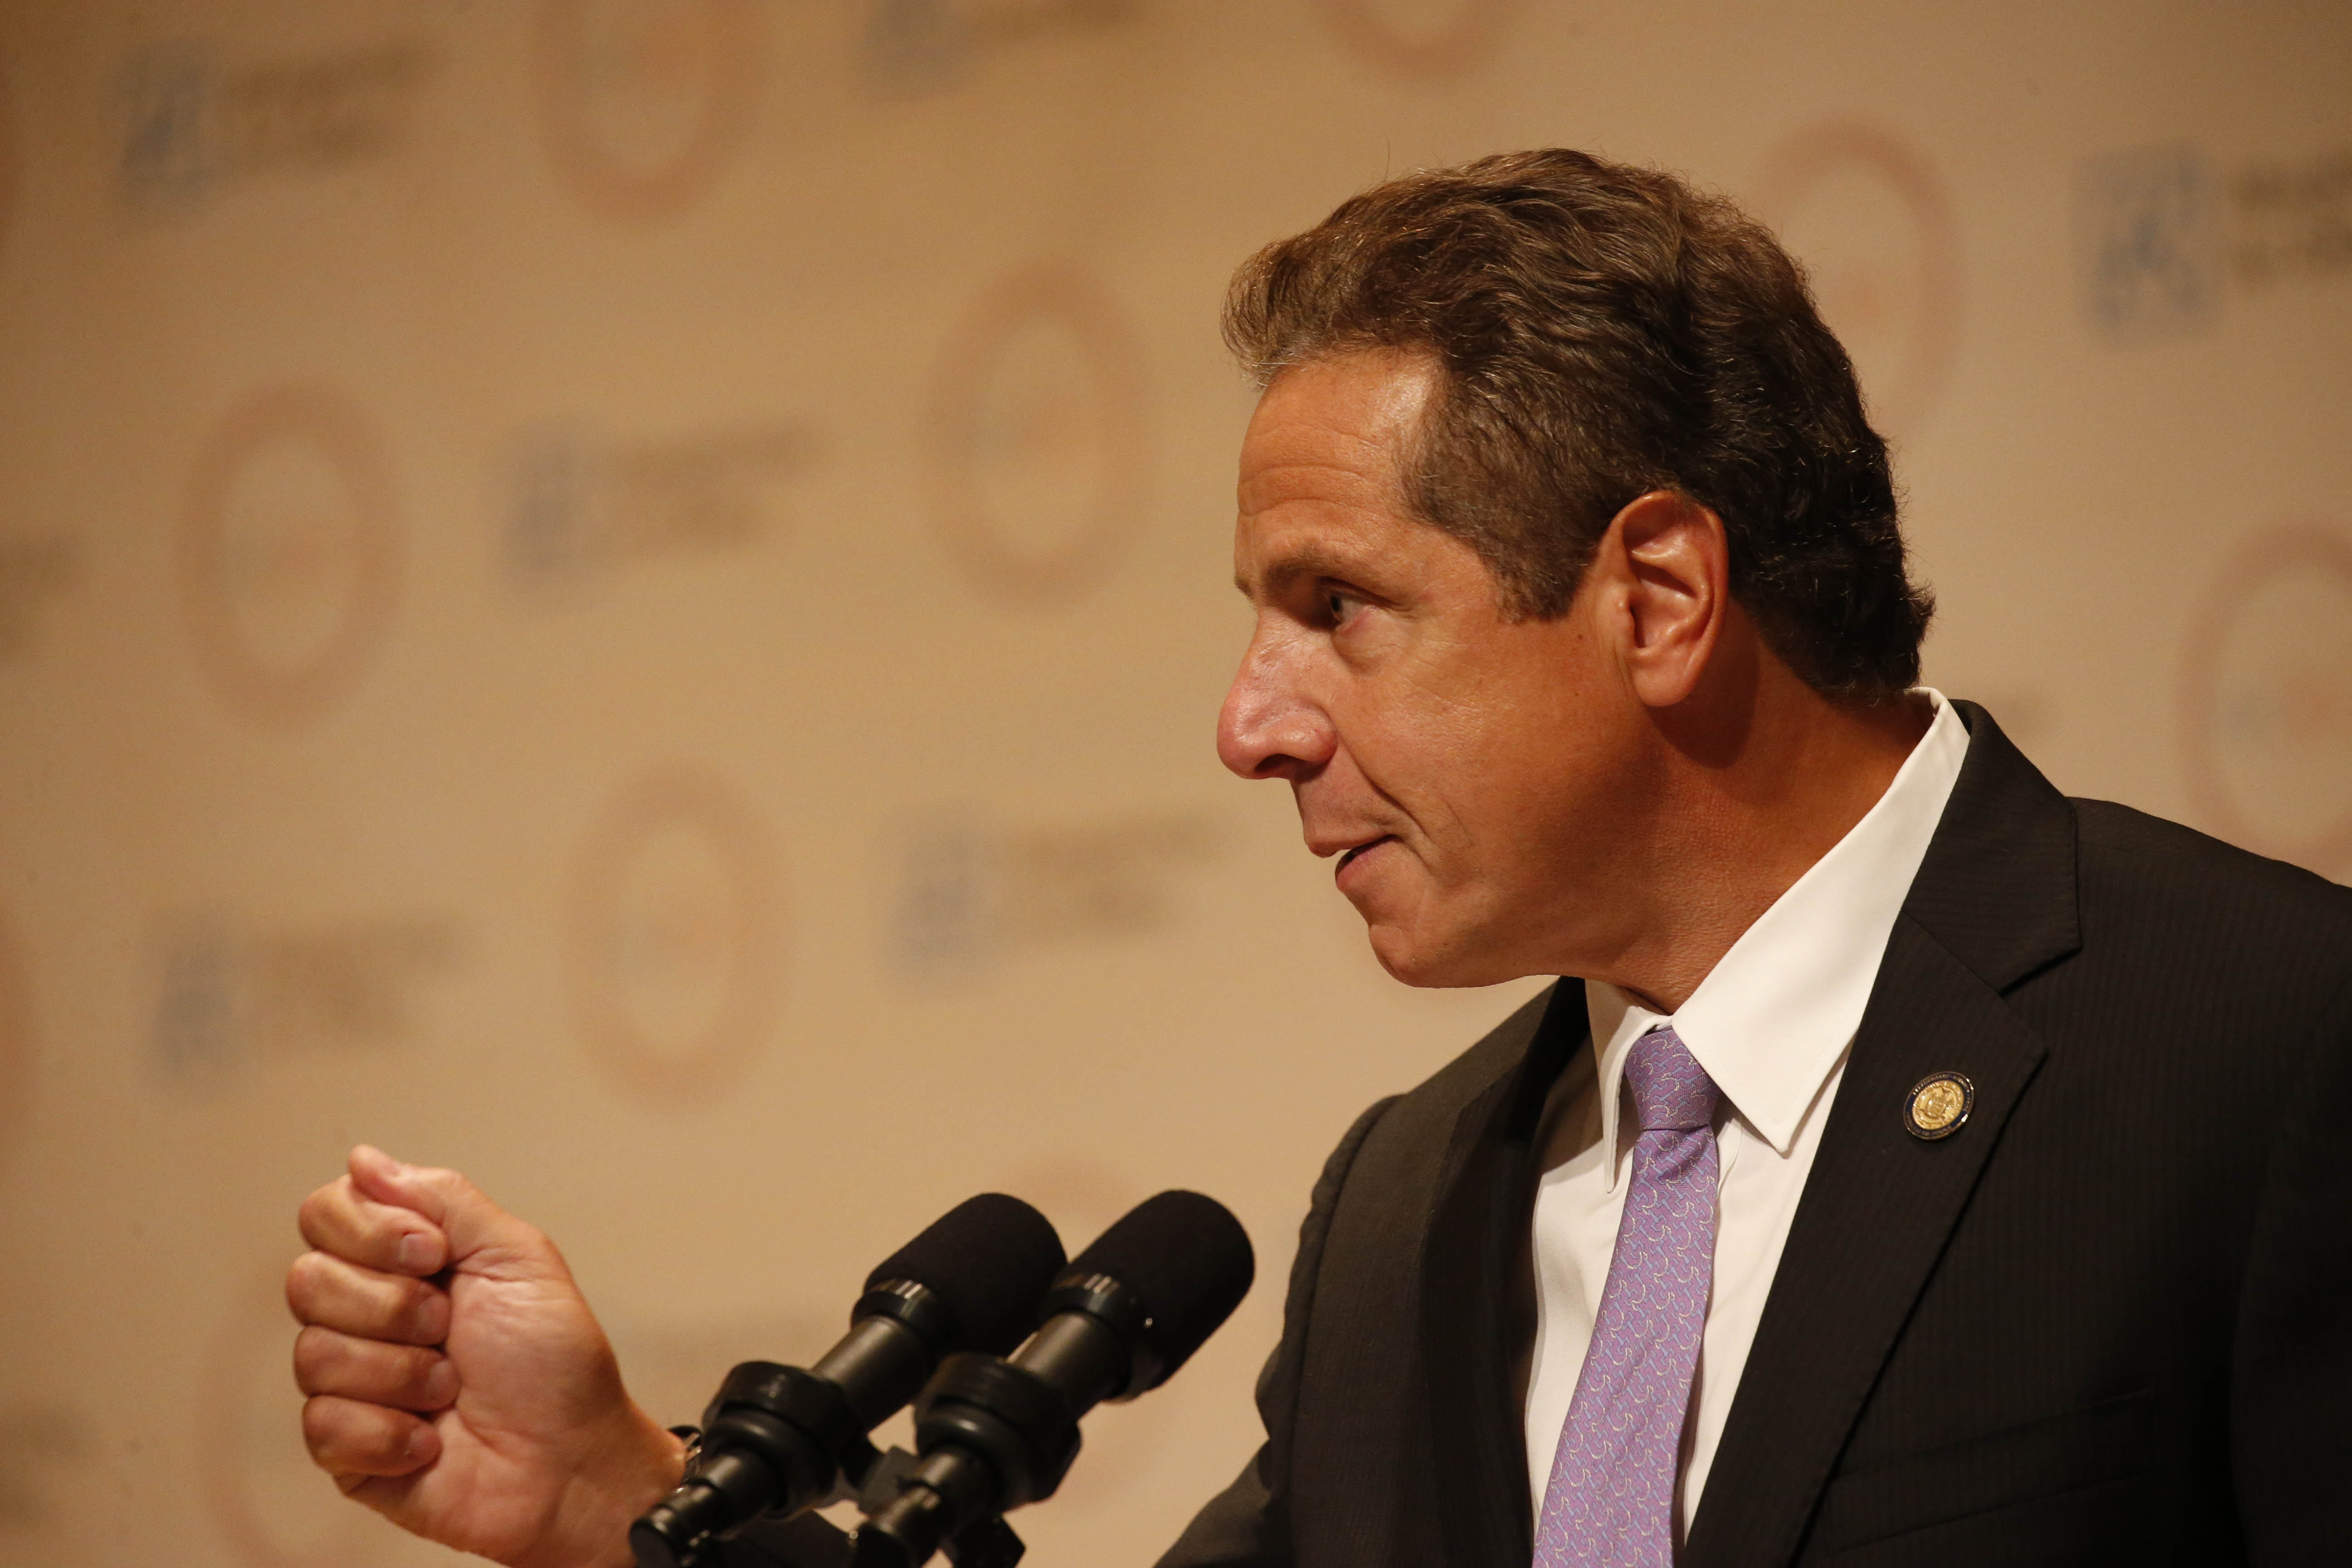 Gov. Andrew Cuomo speaks during an event at the Albright-Knox Art Gallery on Friday, Sept. 23, 2016.  (Derek Gee/Buffalo News)